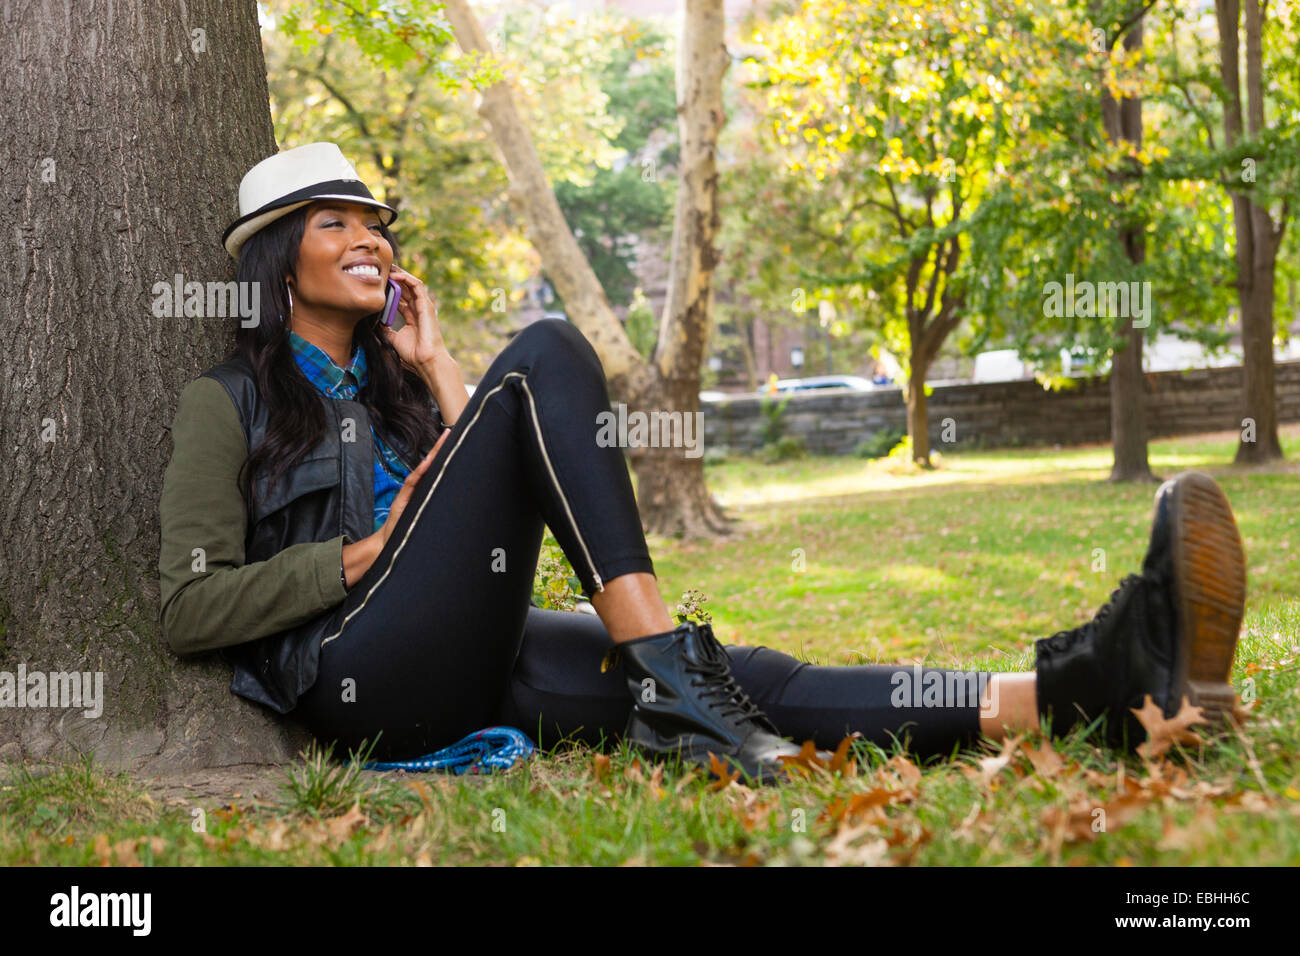 Young woman sitting against tree using smartphone - Stock Image